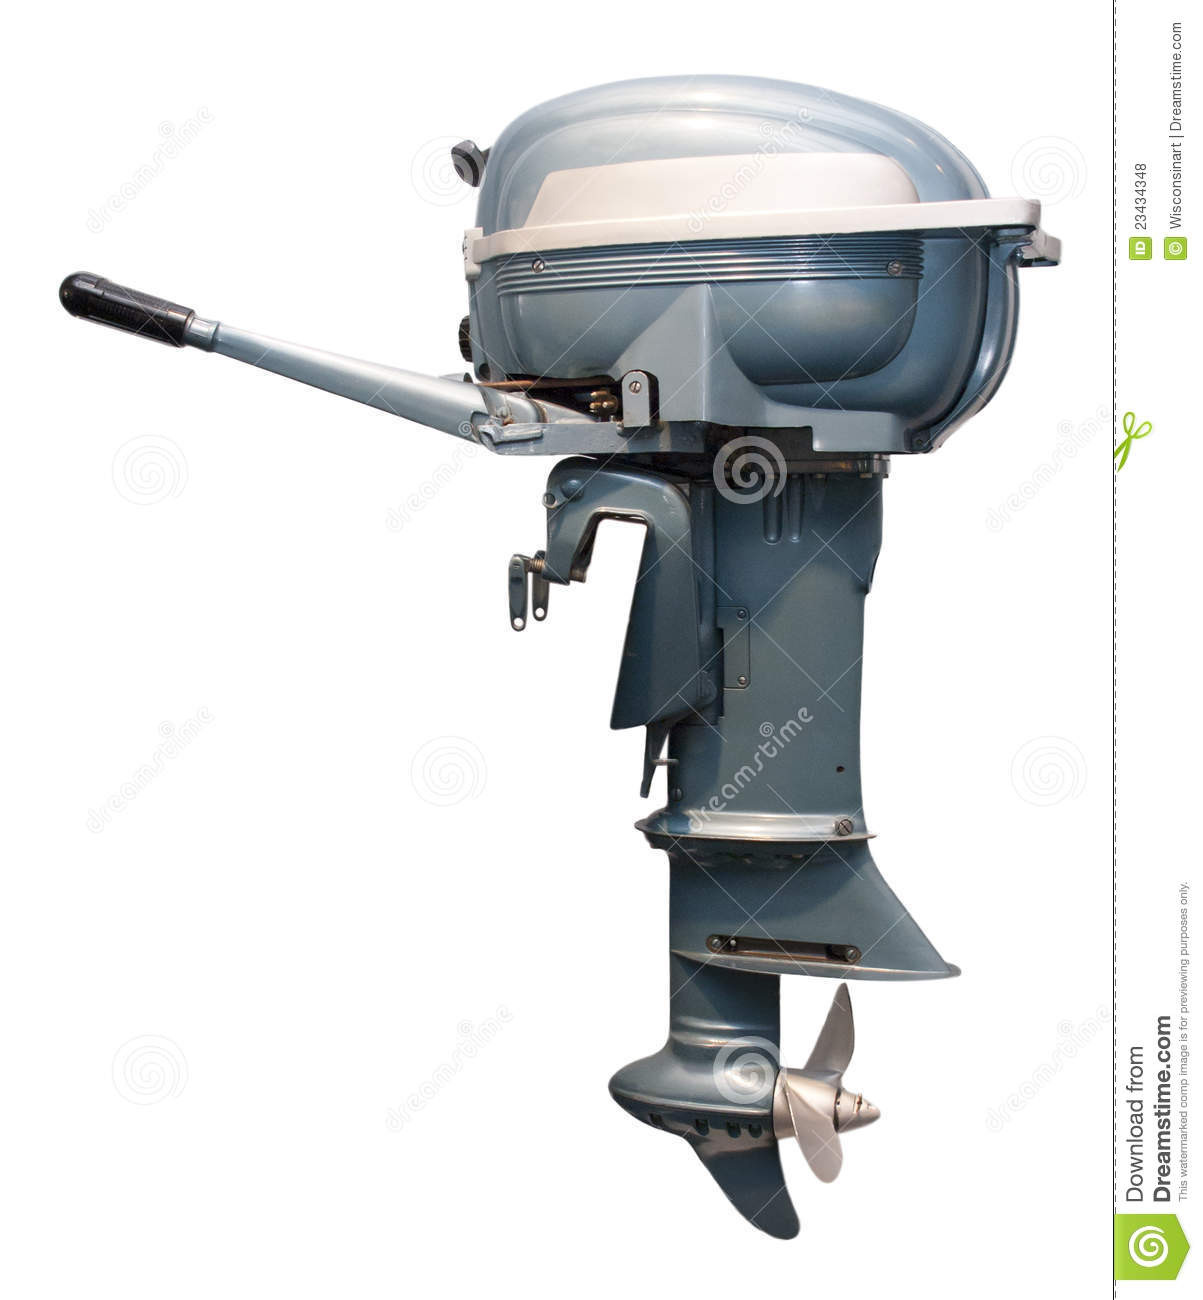 Old Vintage Outboard Boat Motor Engine Isolated Royalty Free Stock ...